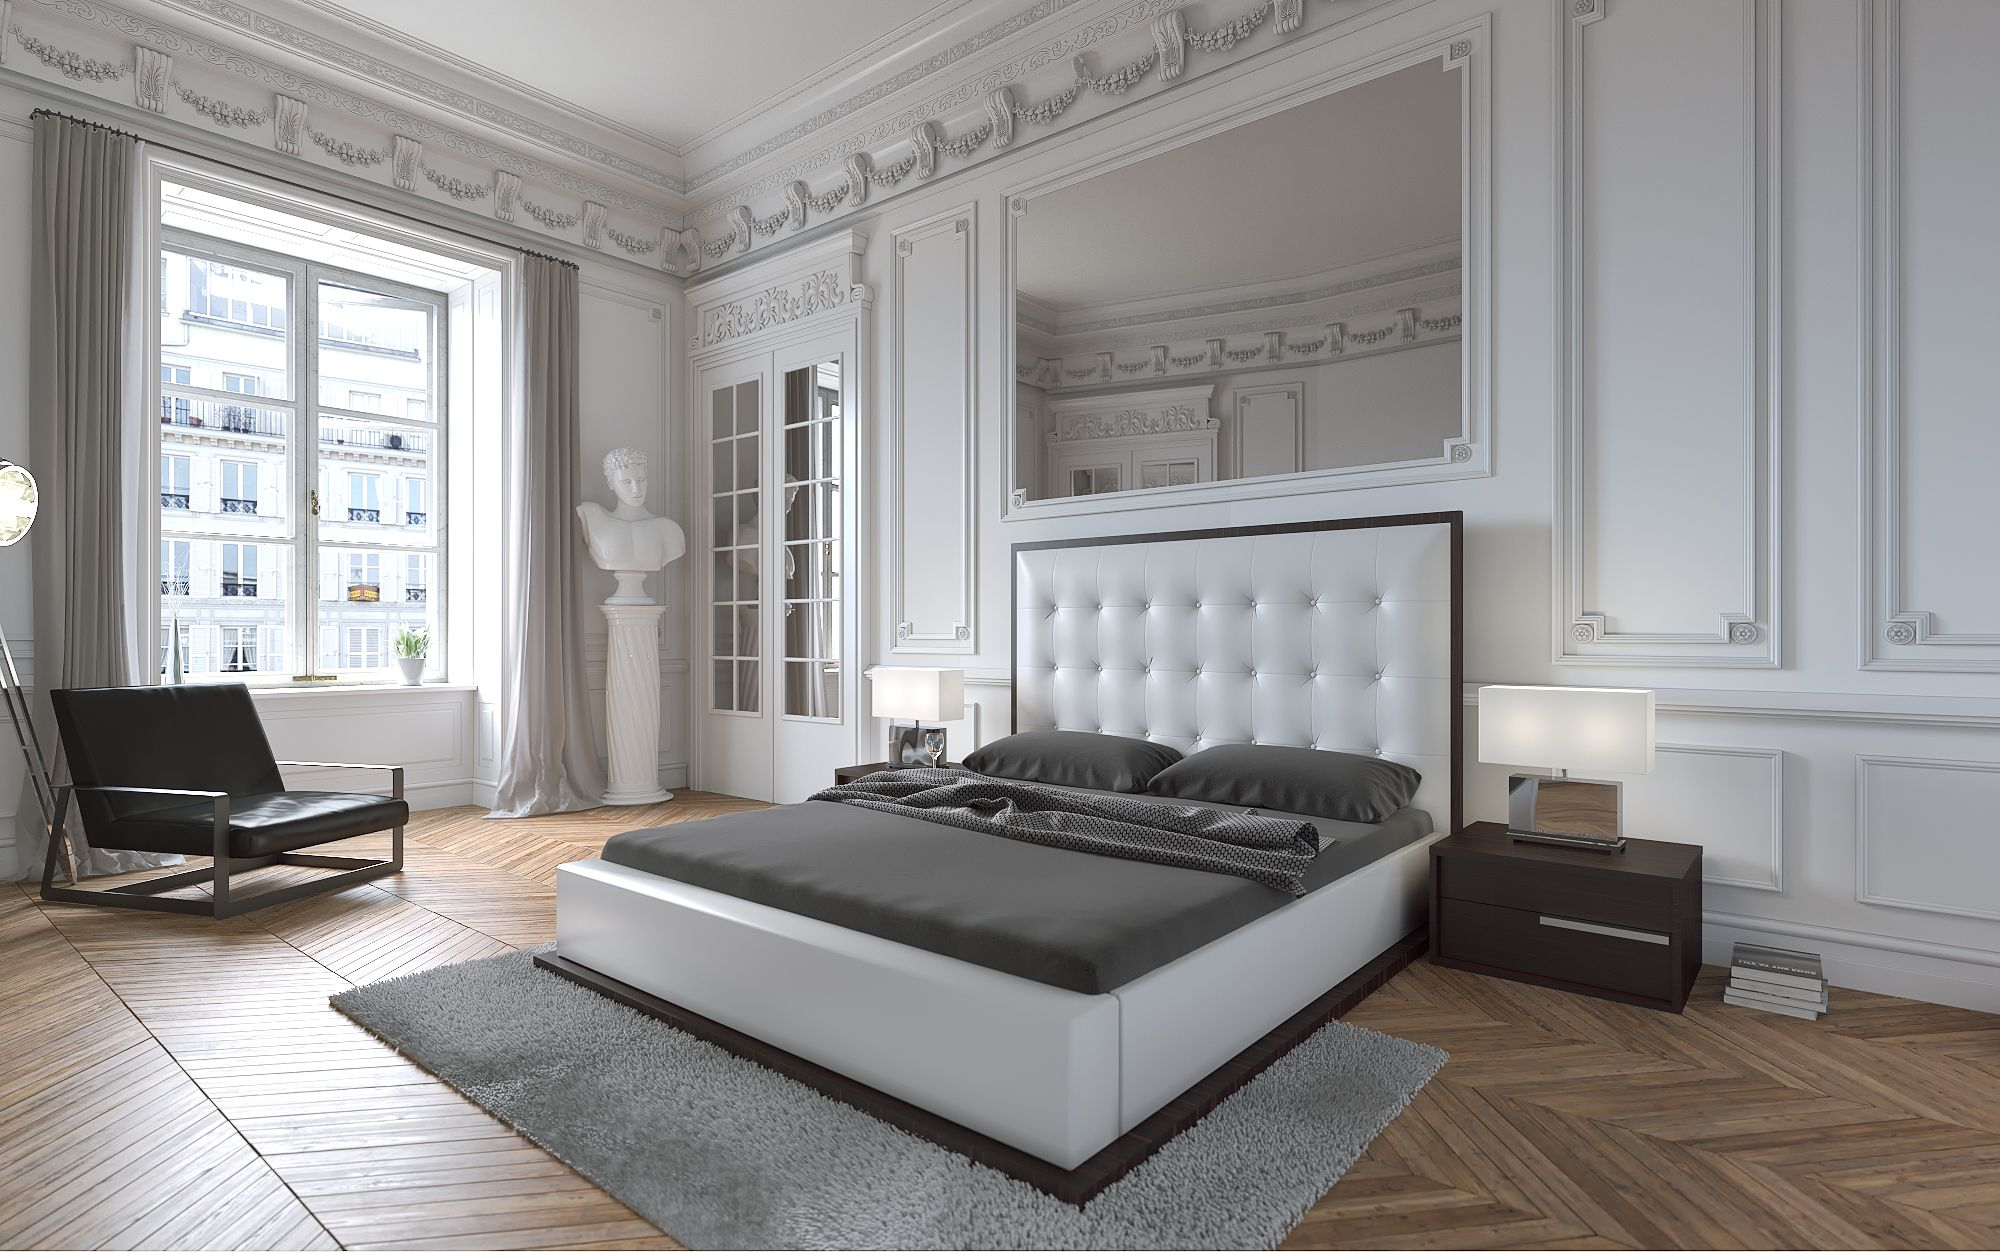 New Bedroom Furniture 2015 modani new collection. paris bedroom collection. | 2015 catalog